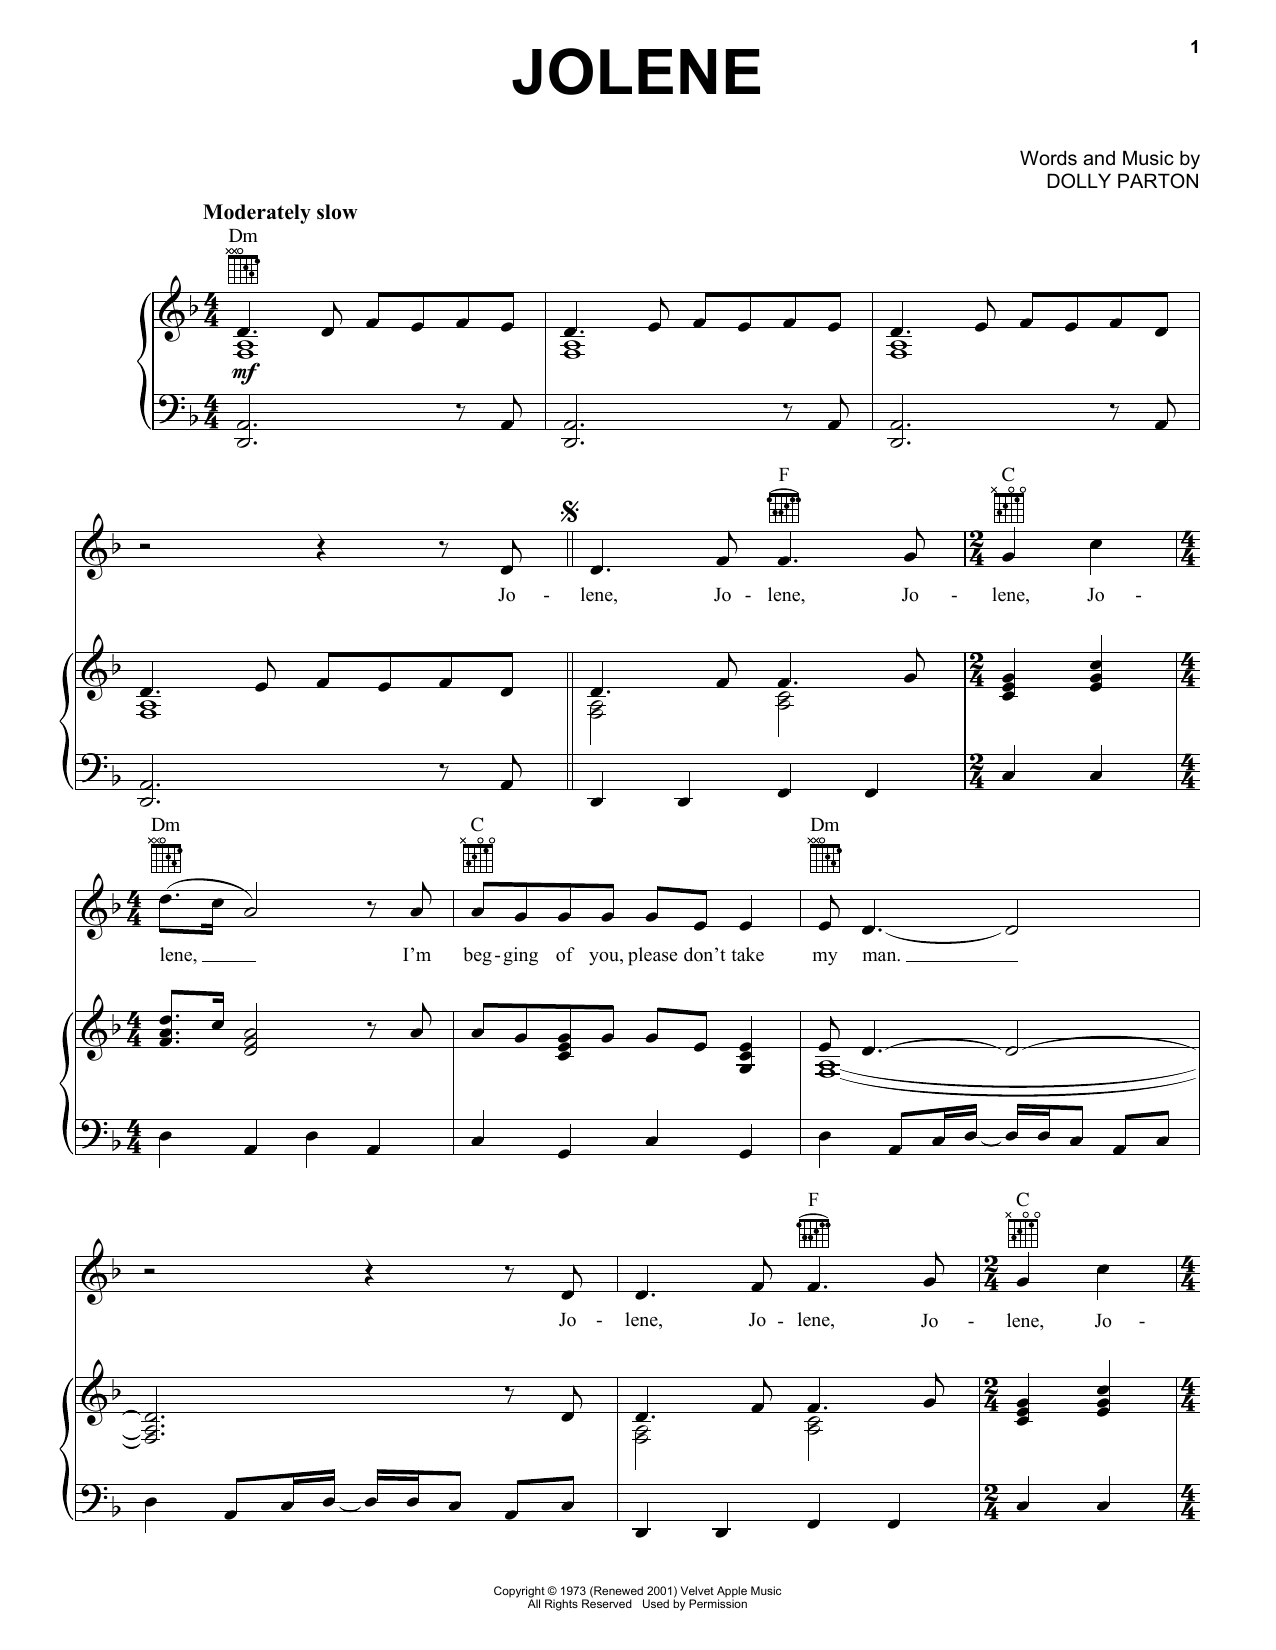 Dolly Parton Jolene sheet music notes and chords - download printable PDF.